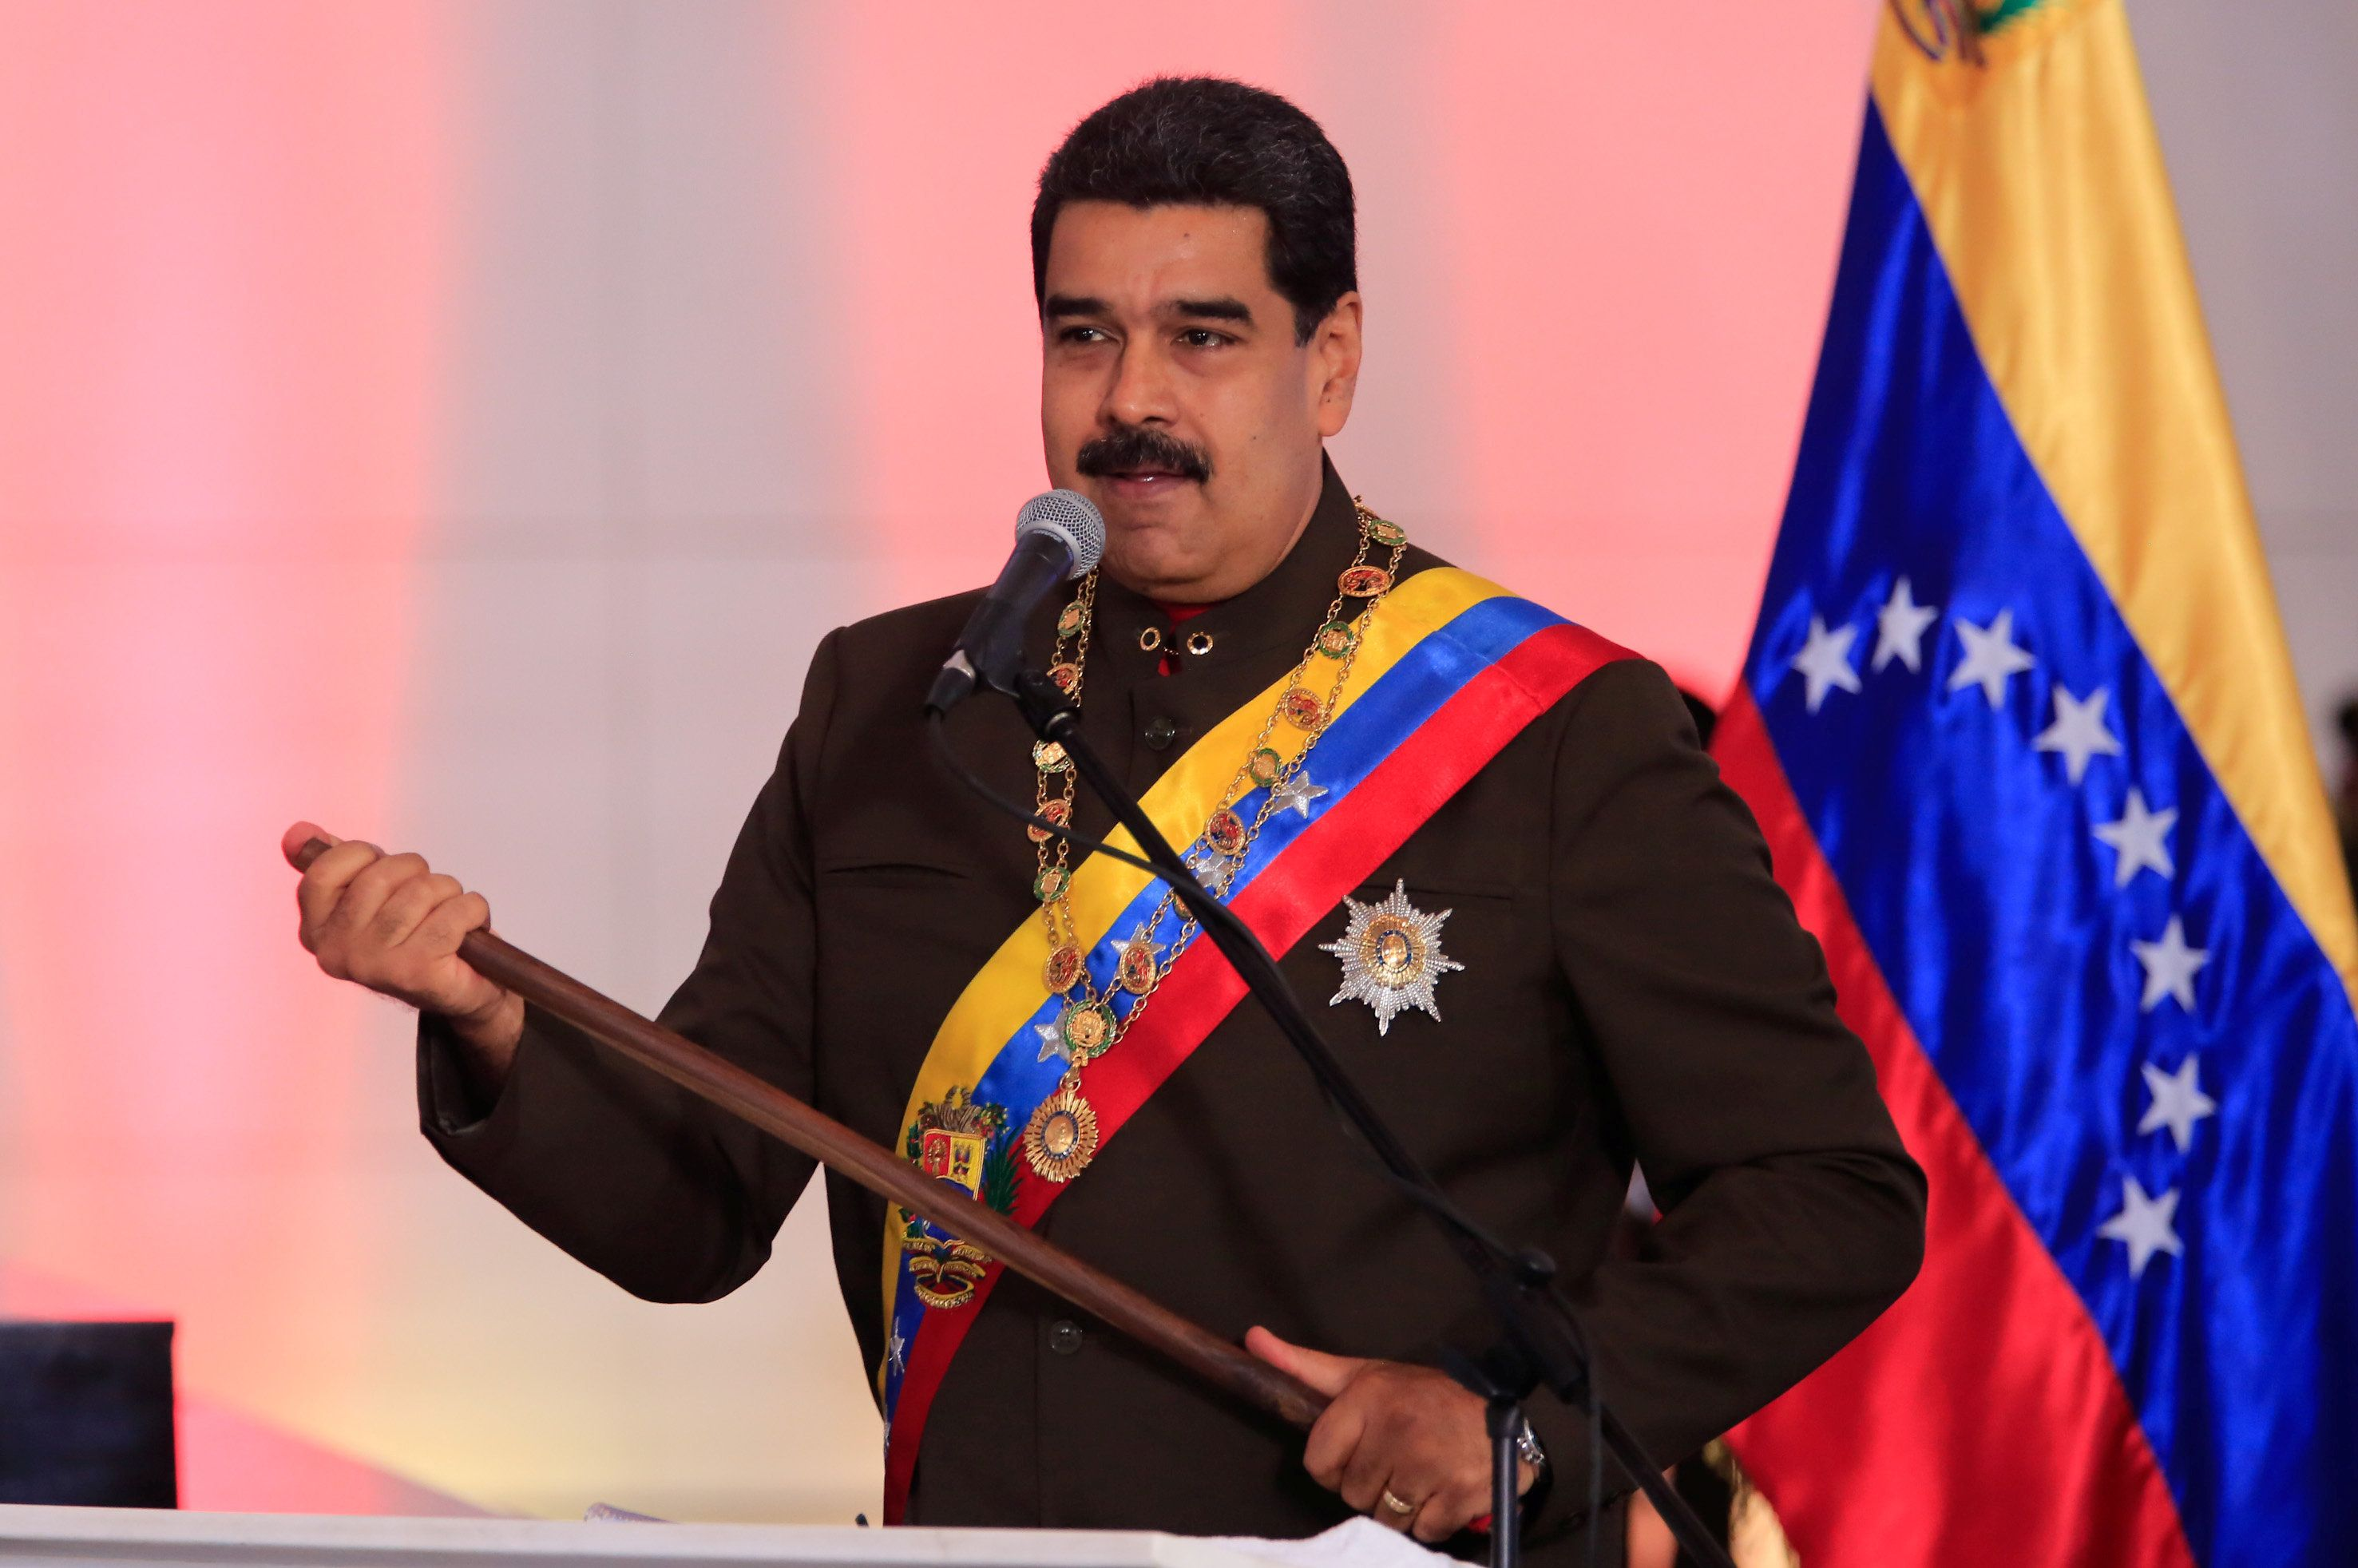 Handout.  Reuters Venezuela's President Nicolas Maduro speaks during a ceremony at the National Pantheon in Caracas